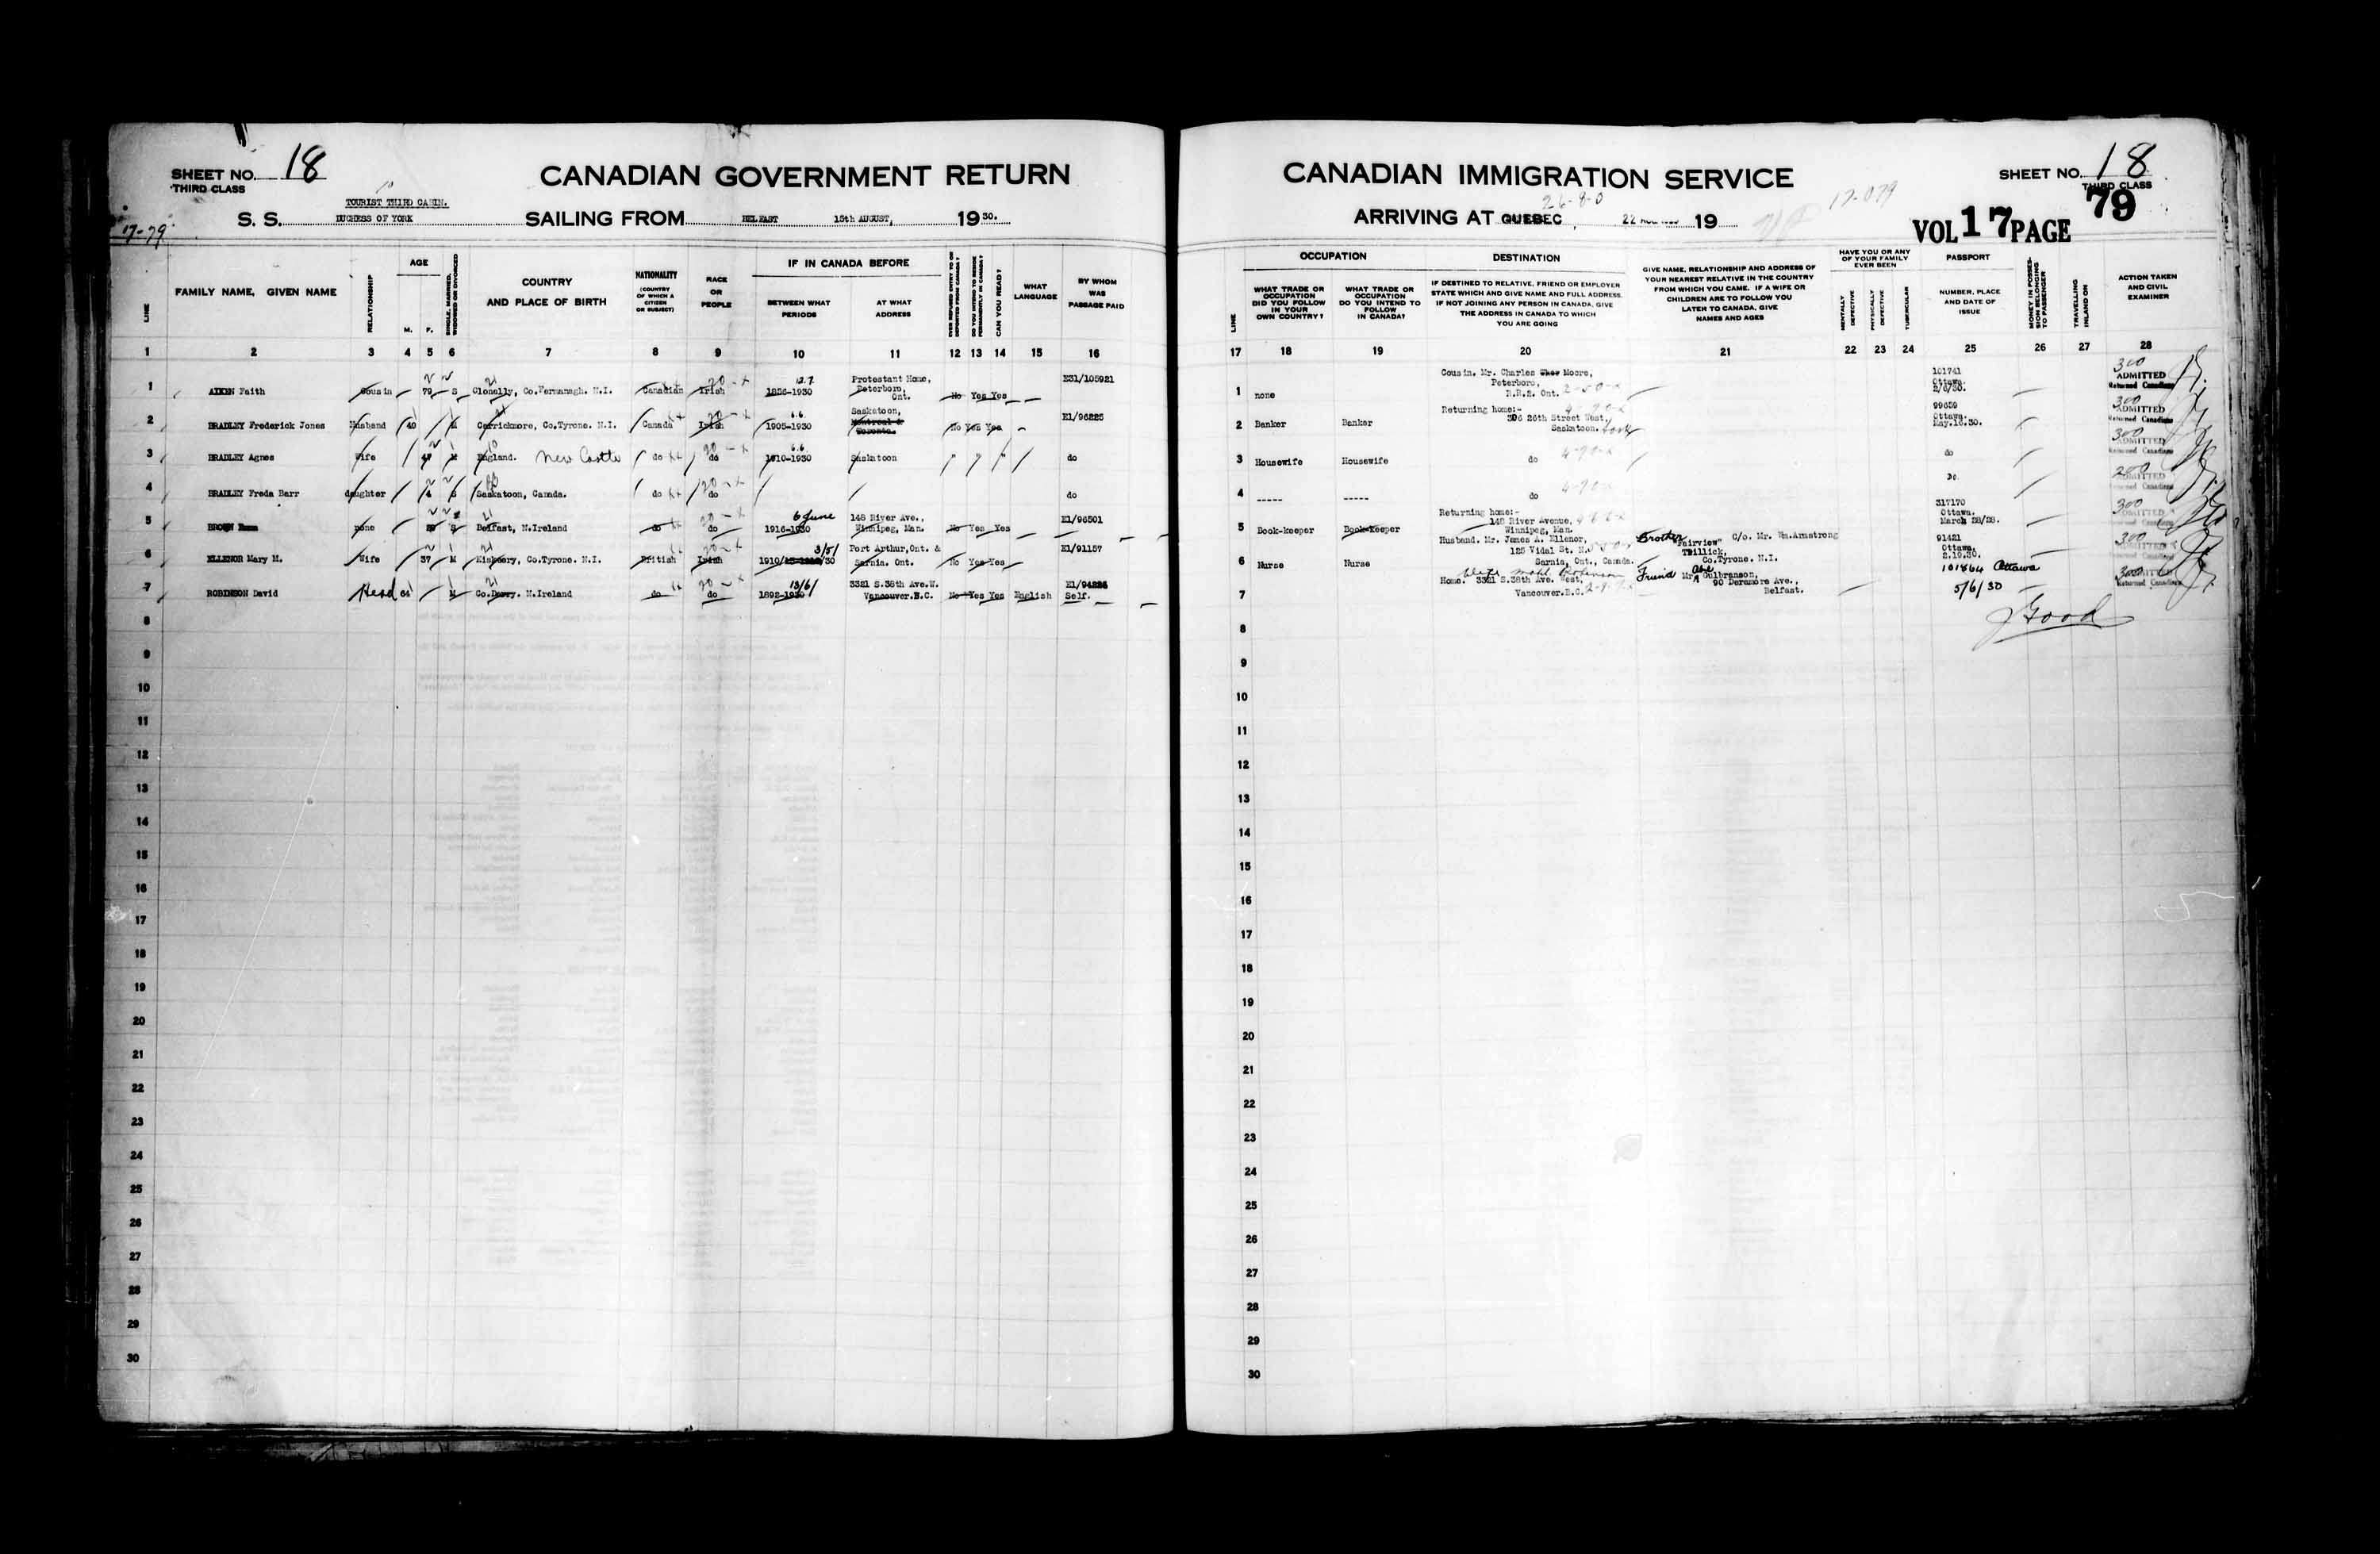 Title: Passenger Lists: Quebec City (1925-1935) - Mikan Number: 134839 - Microform: t-14768